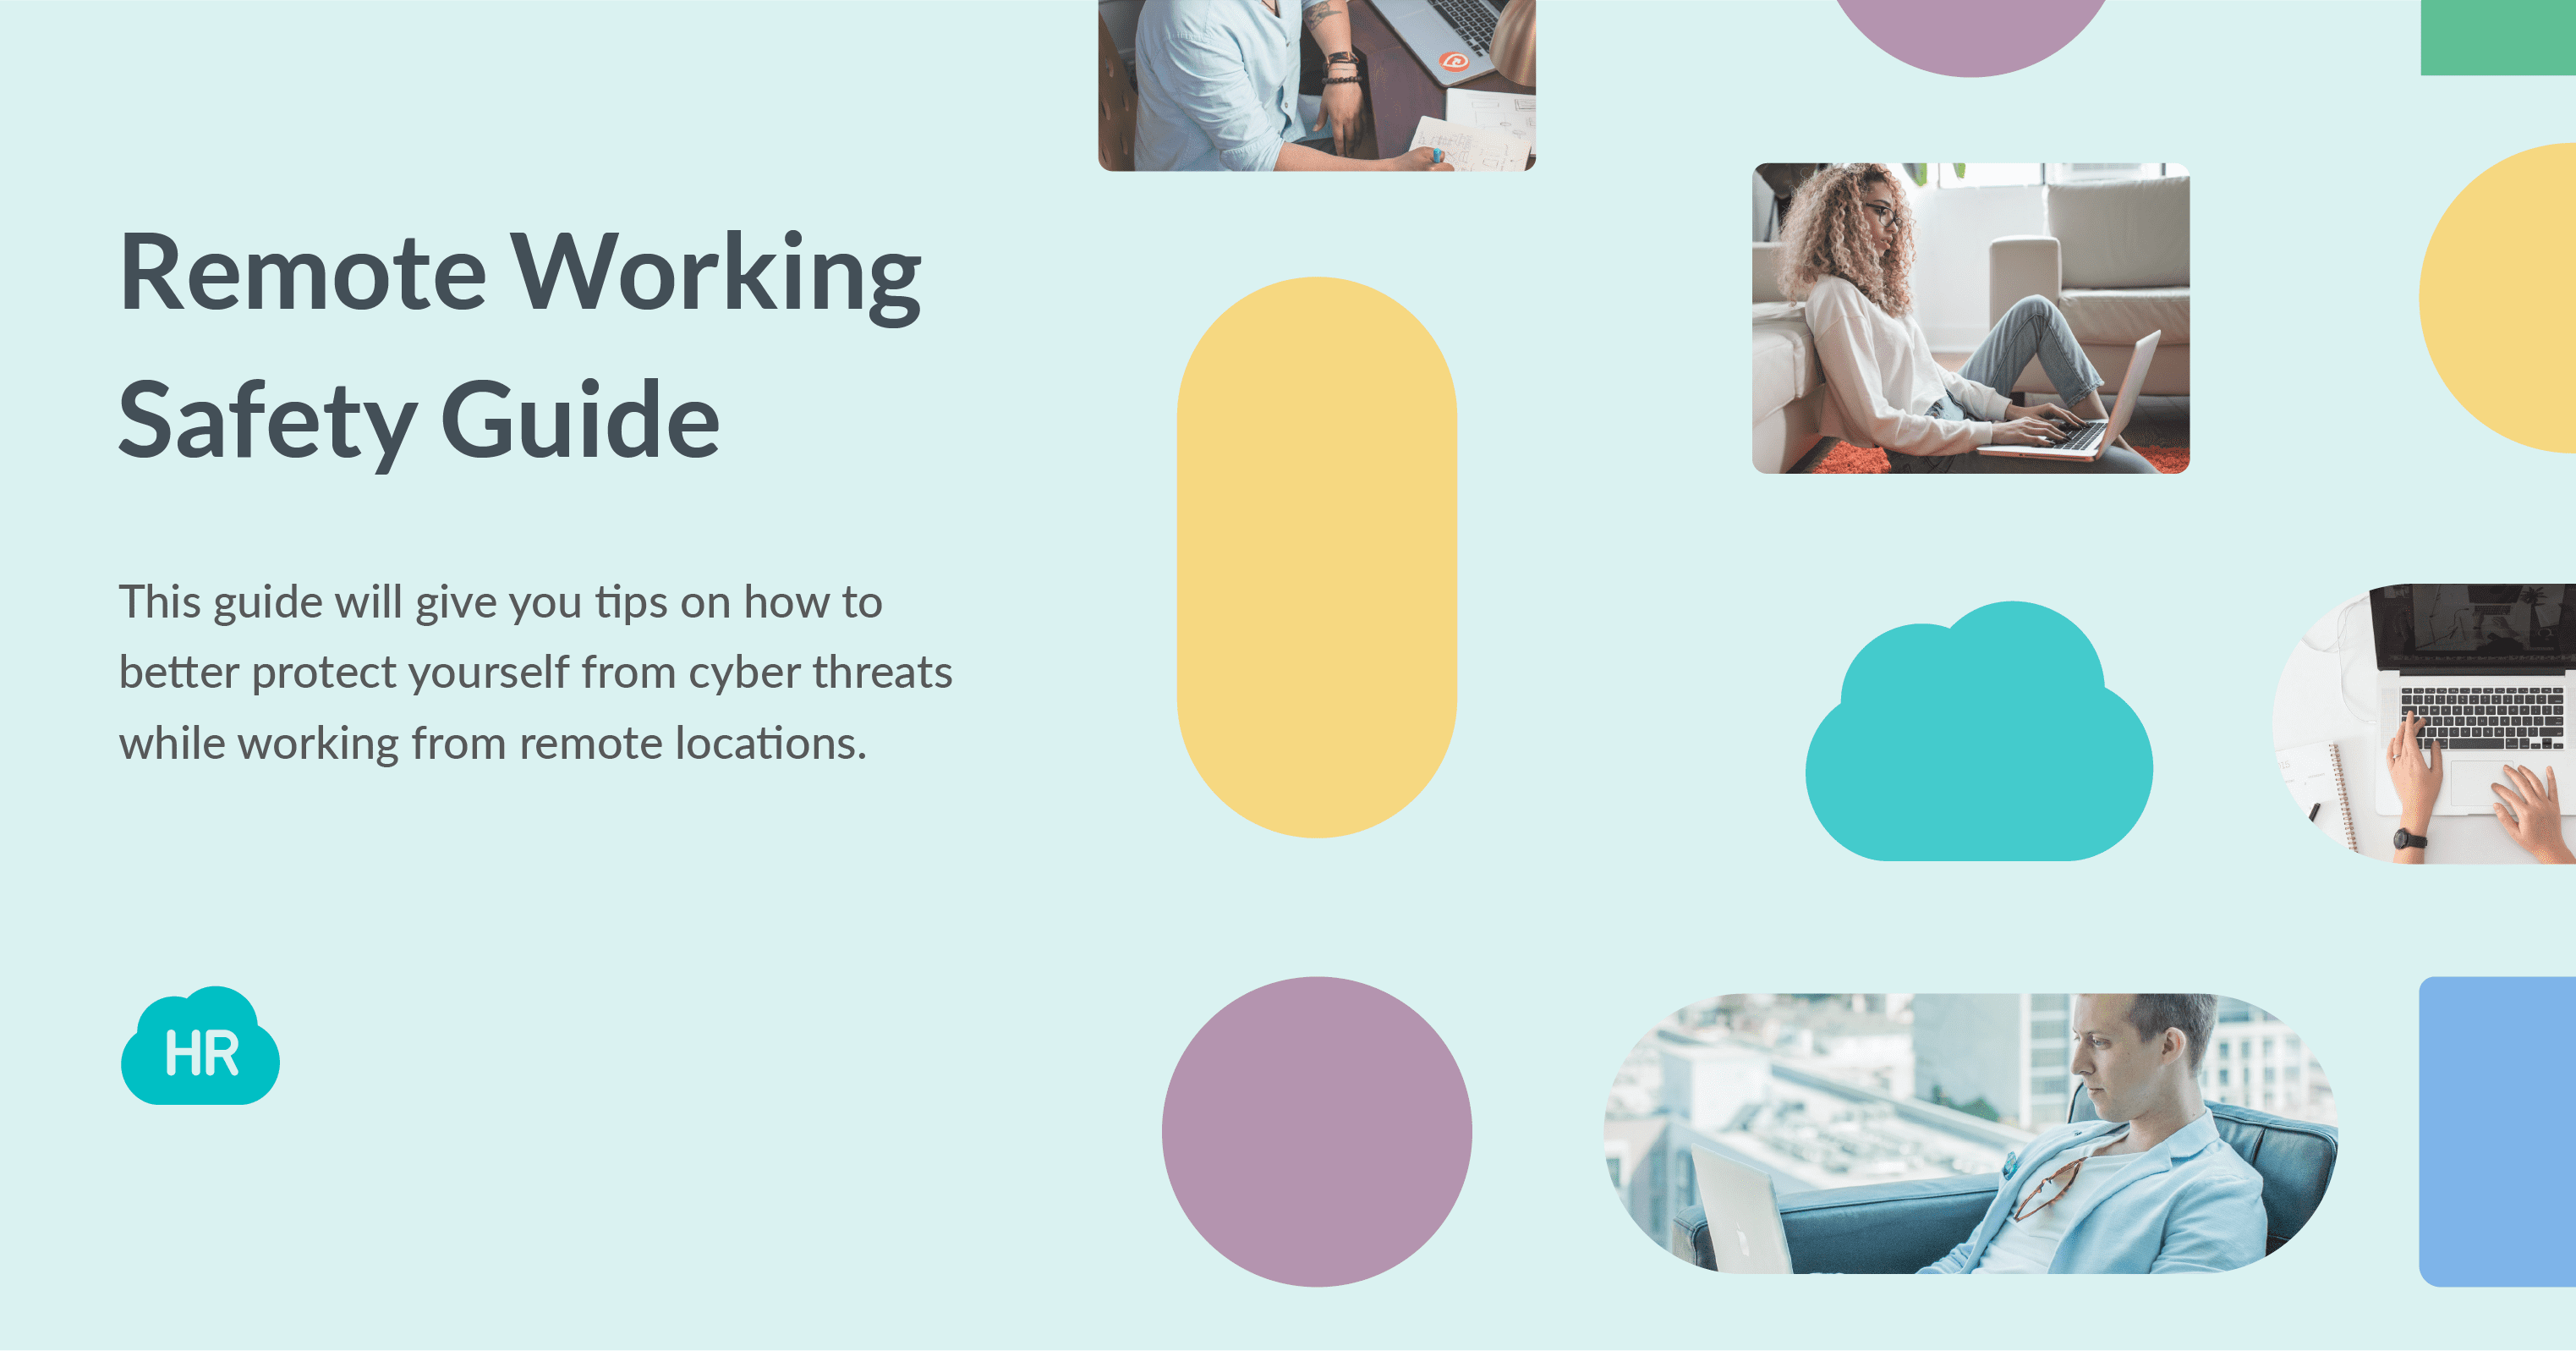 Remote Working Safety Guide